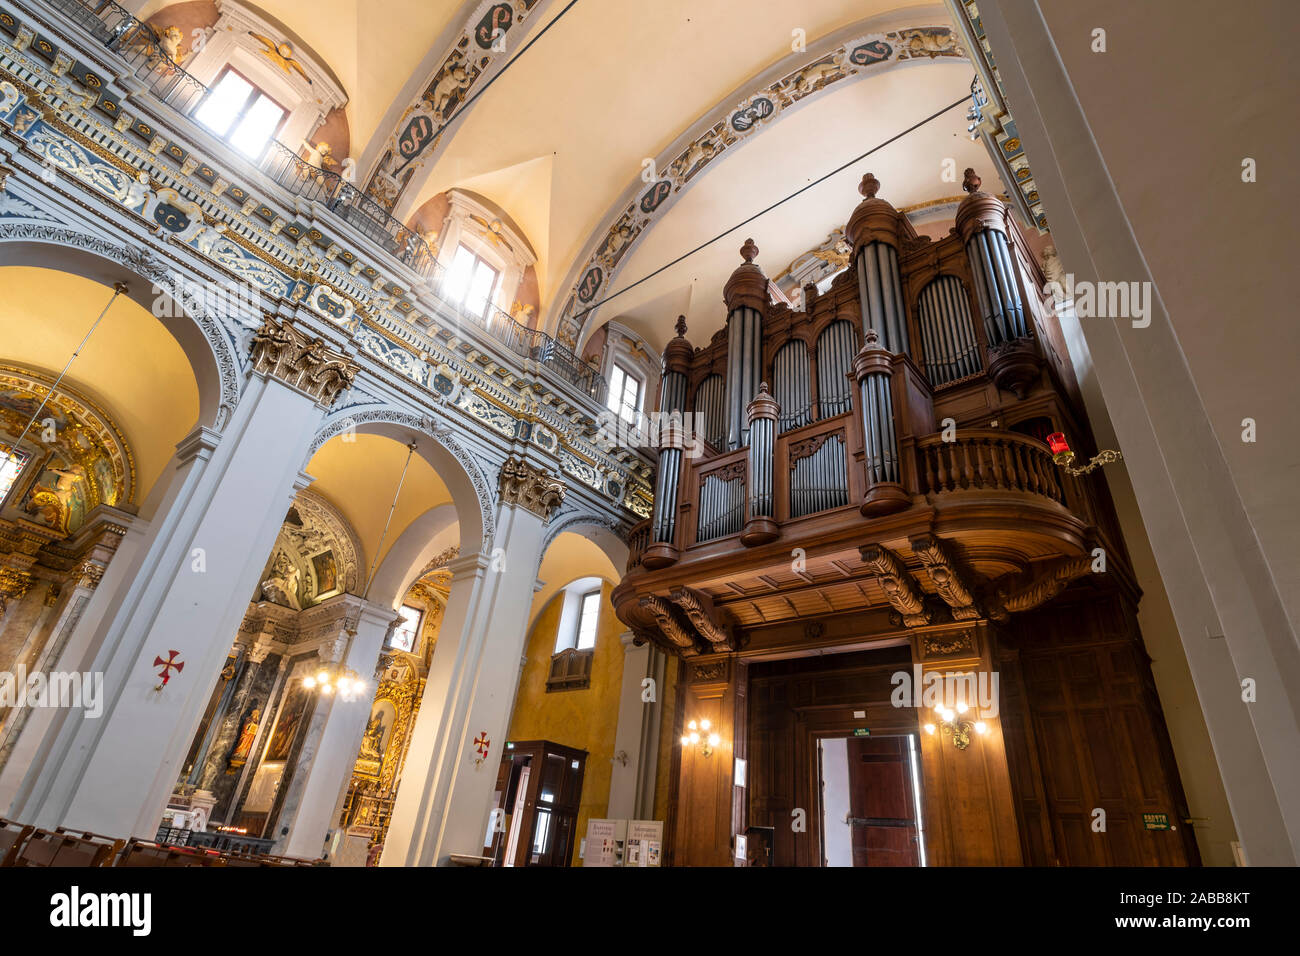 The large wooden pipe organ in the Cathedral Sainte Reparate in the Old Town section of Nice, France, on the French Riviera. Stock Photo